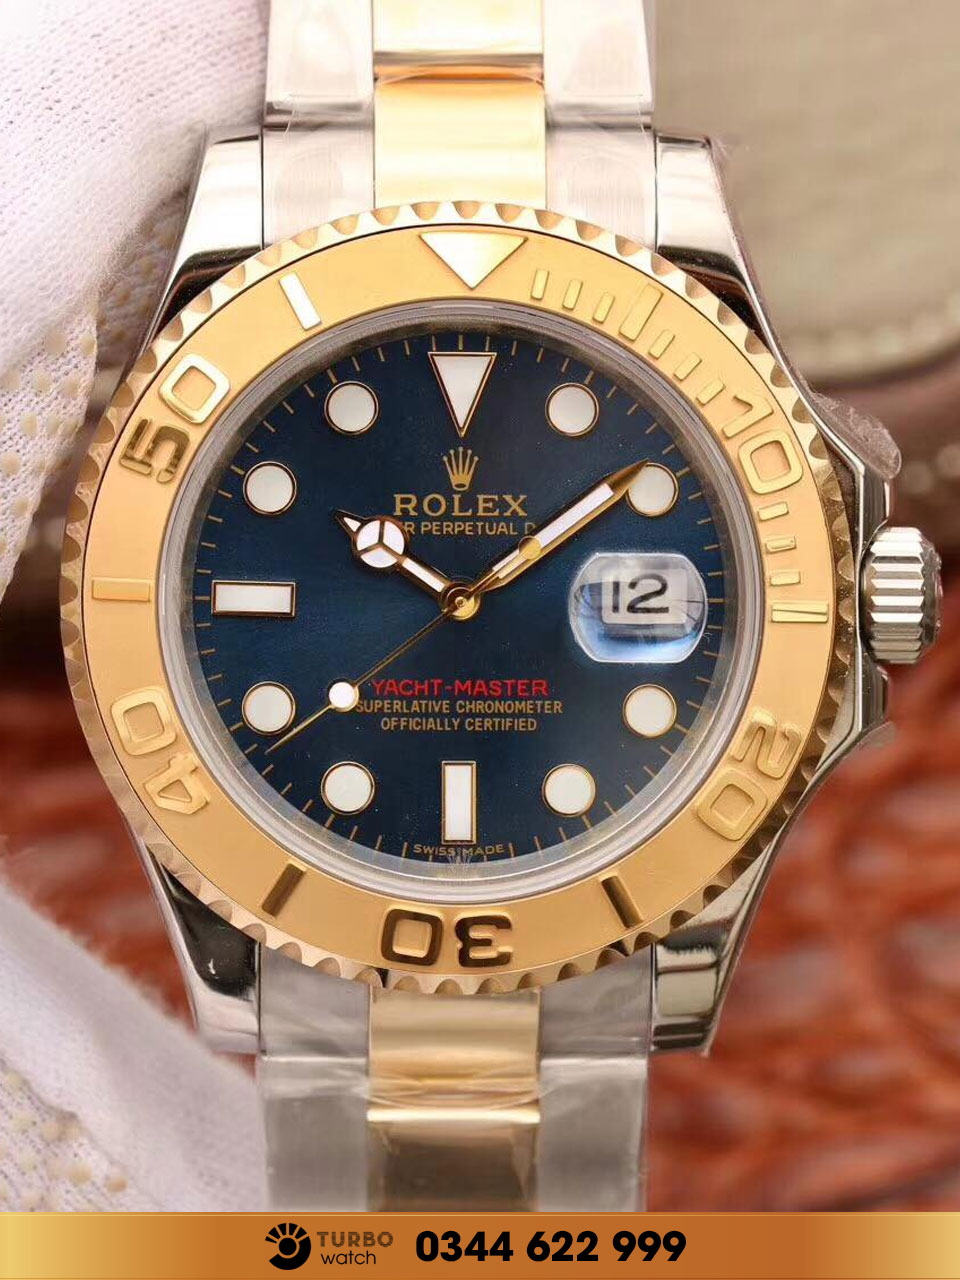 Rolex yatch master replica 1:1